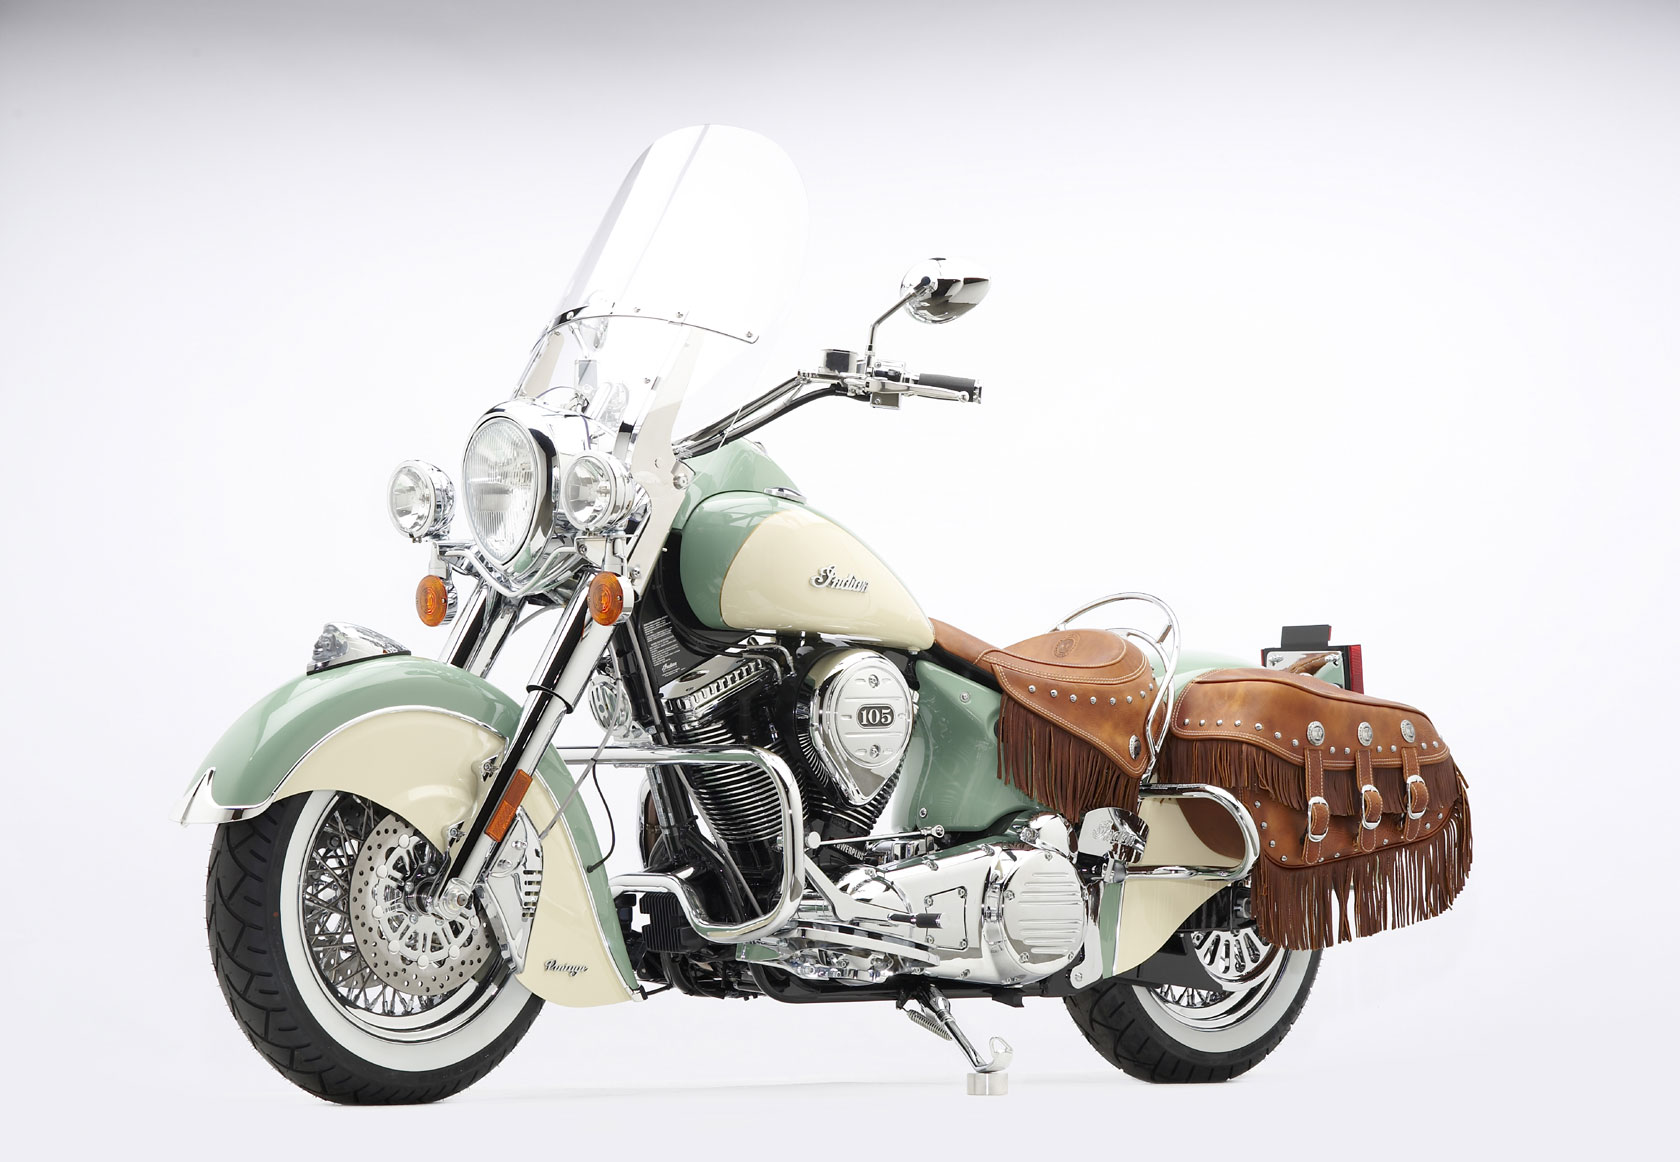 Indian Chief Standard images #99480